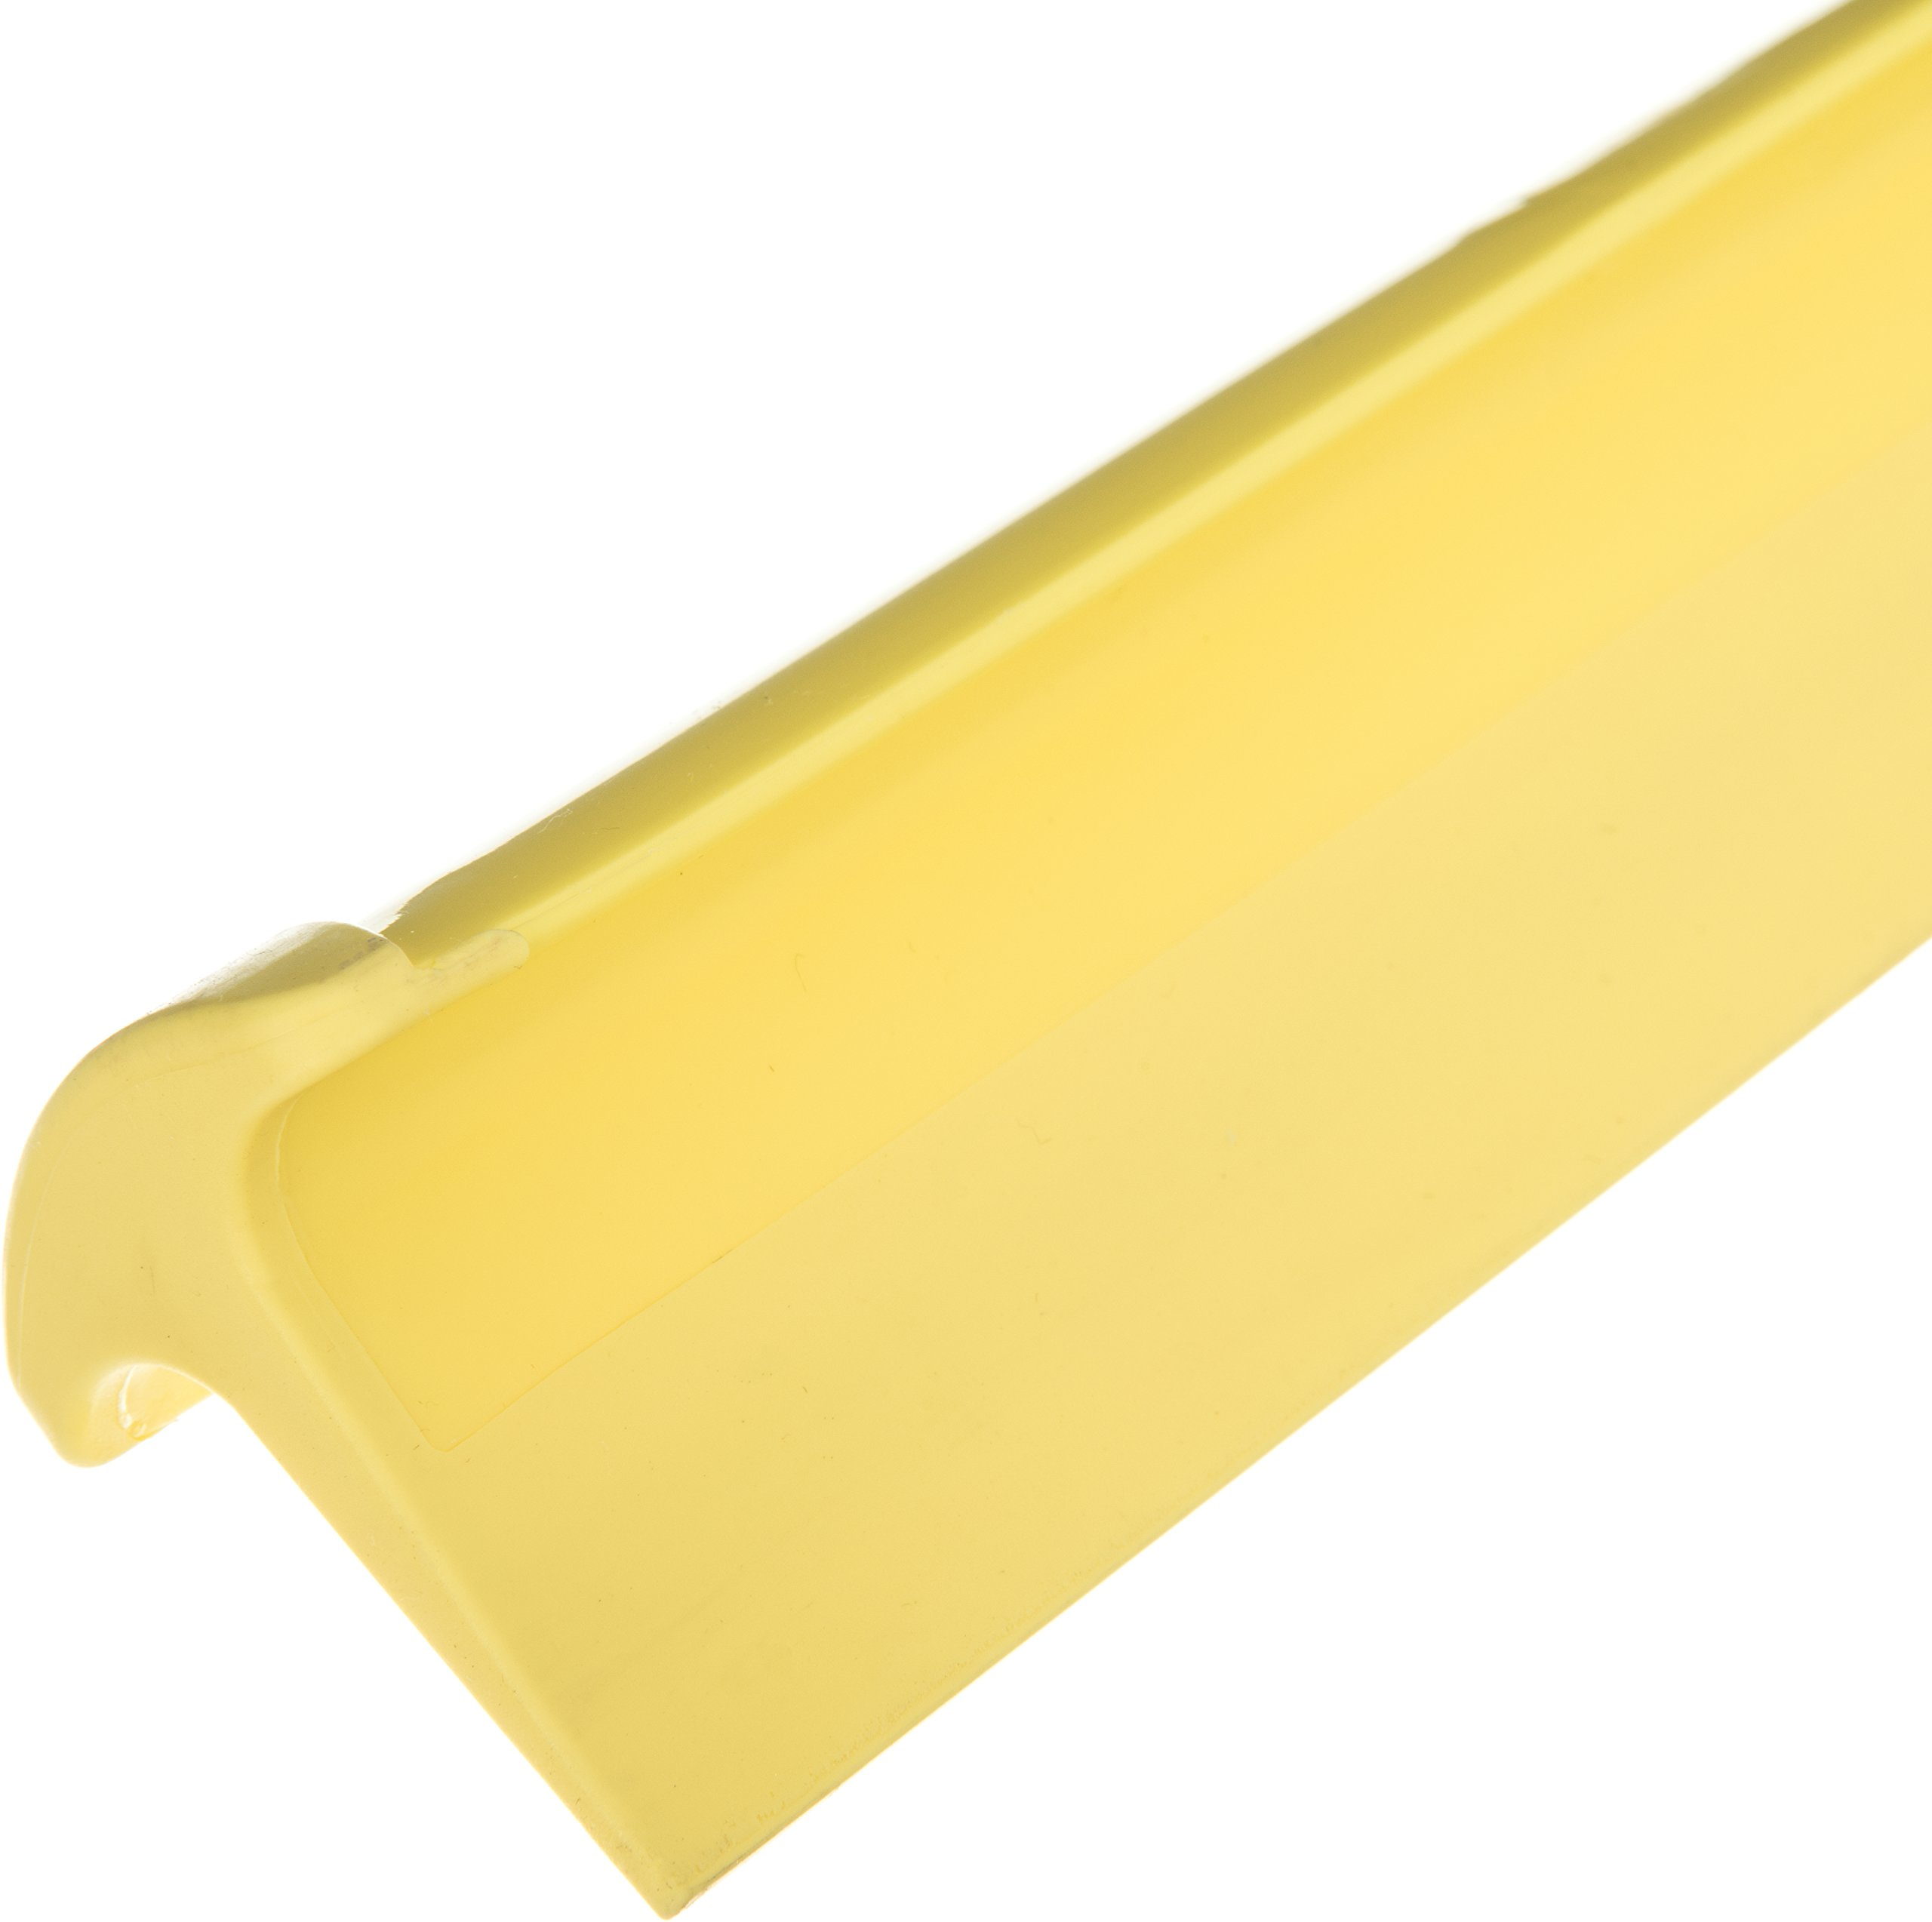 Carlisle 3656704 Solid One-Piece Foam Rubber Head Floor Squeegee, 20'' Length, Yellow (Case of 6) by Carlisle (Image #3)